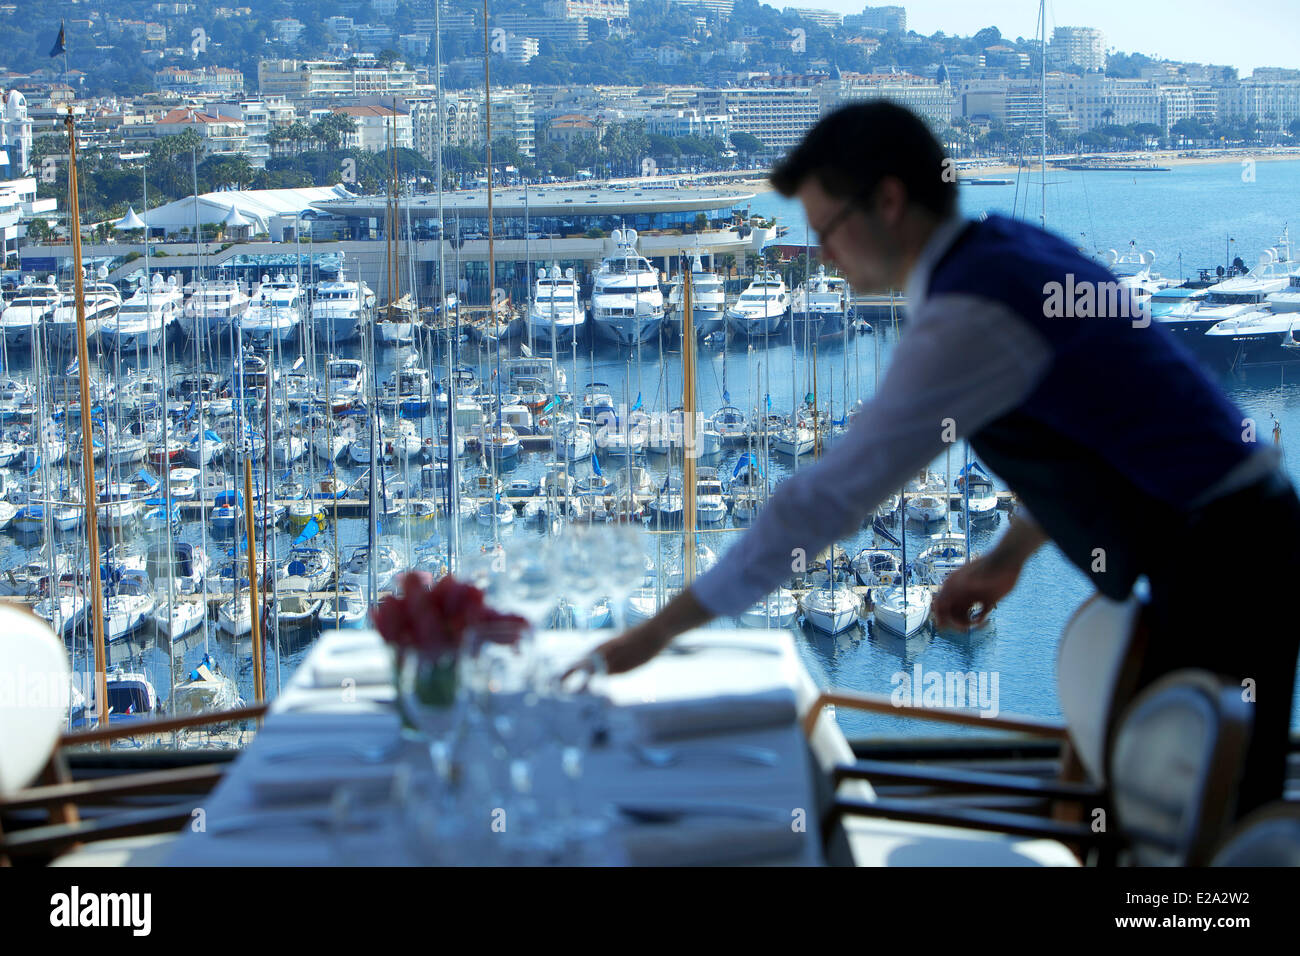 France, Alpes Maritimes, Cannes, Hotel Radisson Blu Hotel, Restaurant on 360 ░ - Stock Image